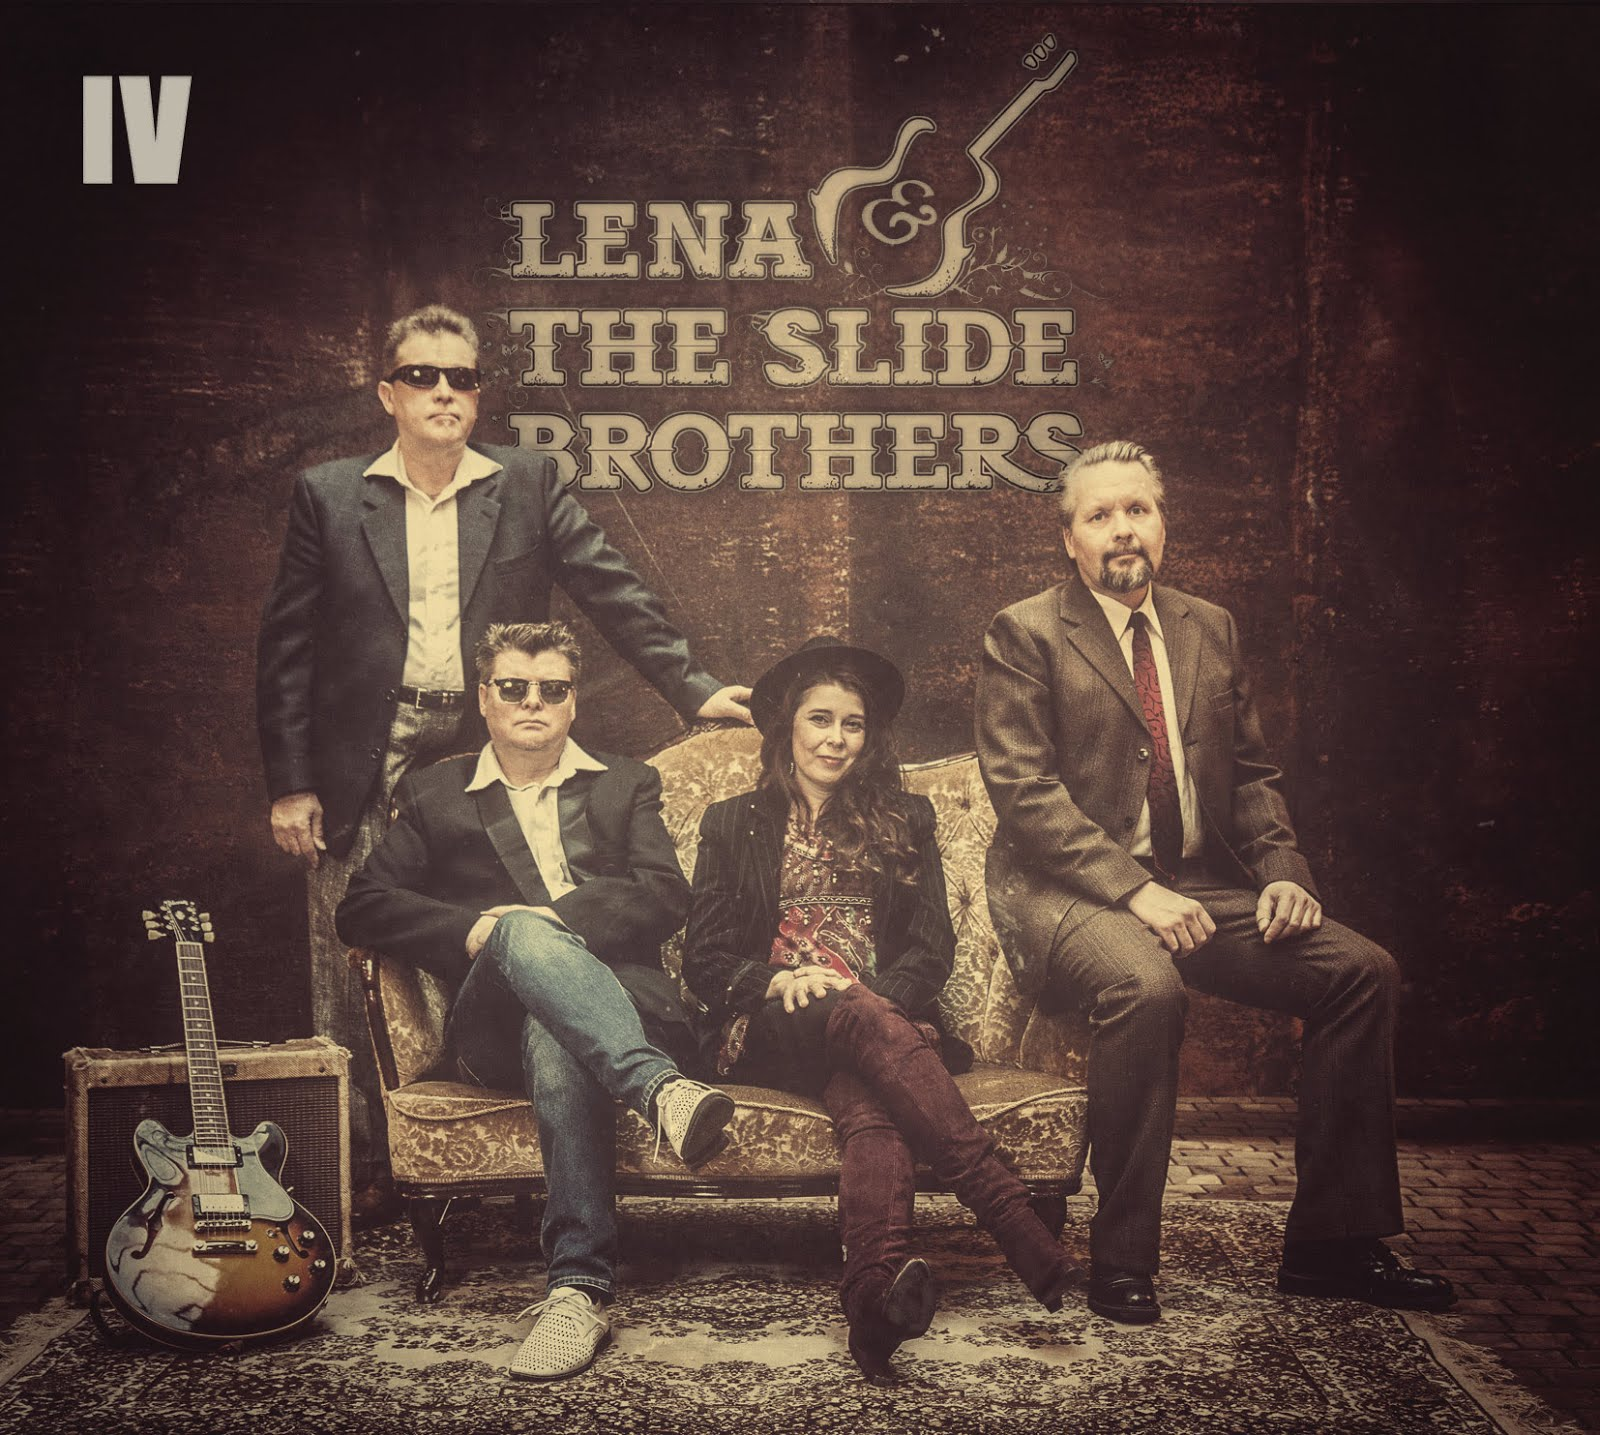 Lena & The Slide Brothers - IV Label: RetroU Art